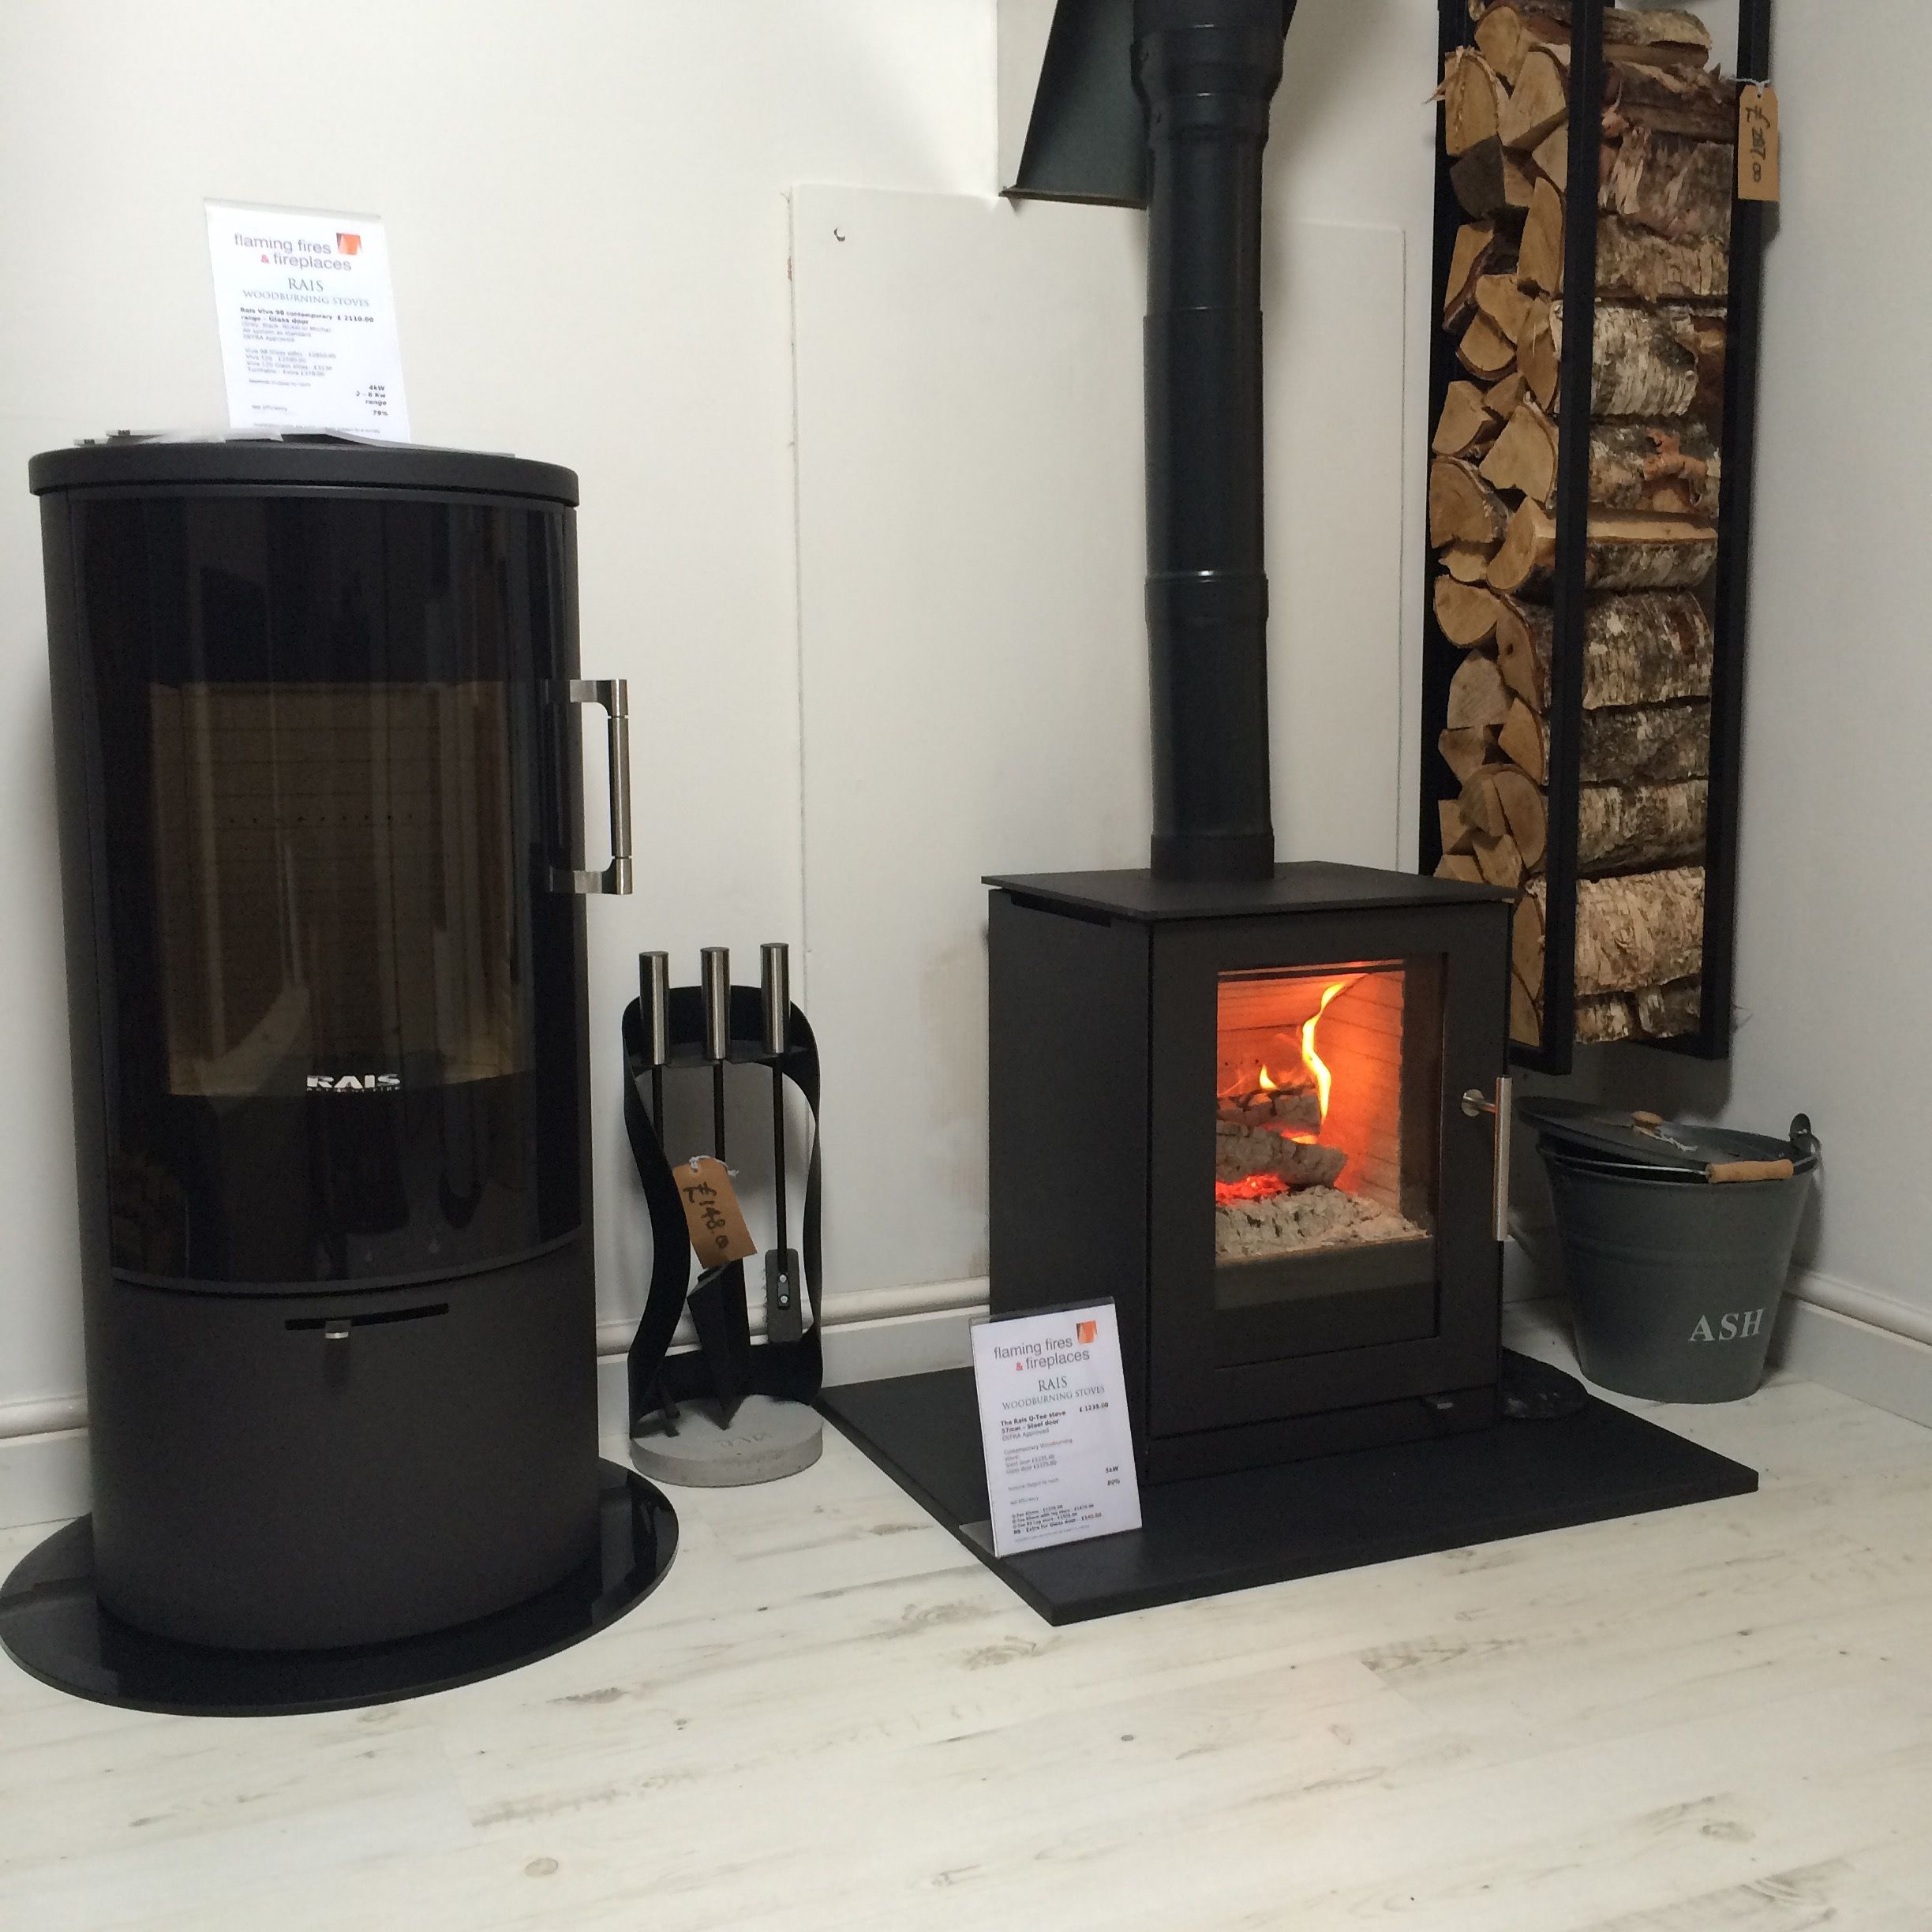 For Stylish Danish Contemporary Woodburners Visit Our Showroom To View The Rais Collection On Display Multi Fuel Stove Contemporary Design Electric Fires